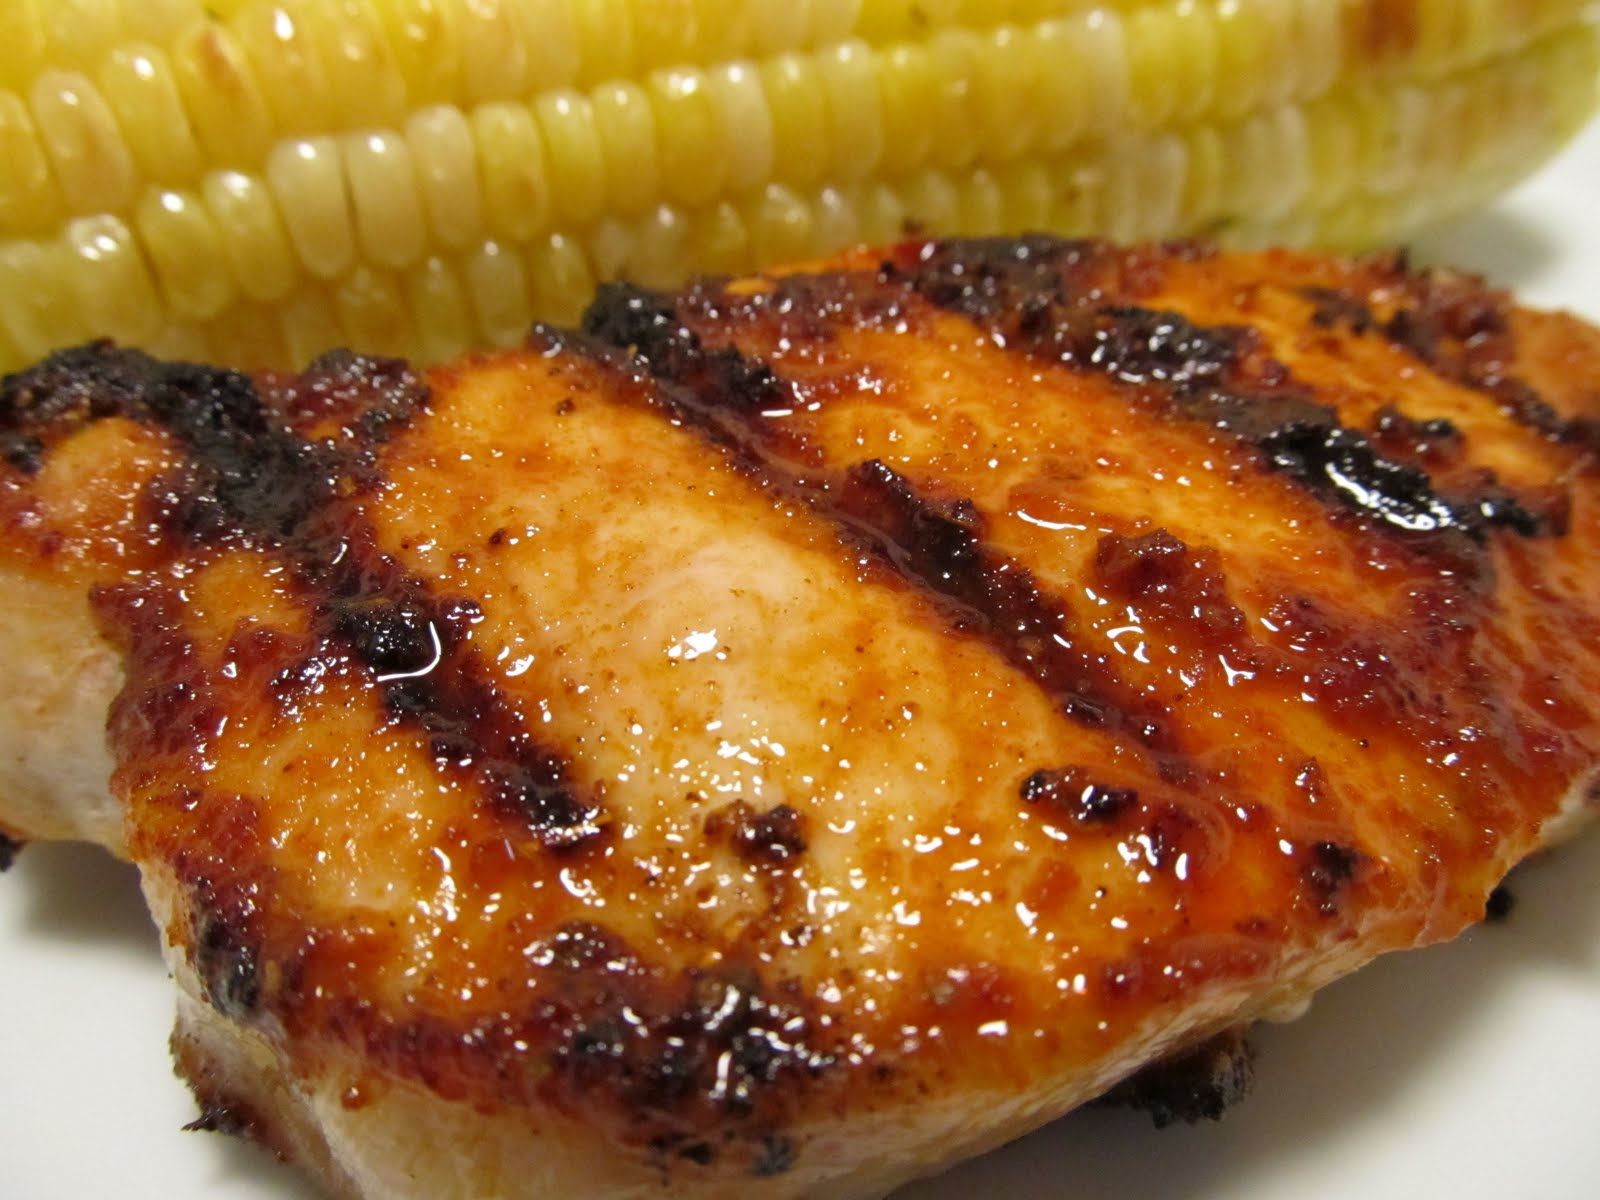 Jenn's Food Journey: Grilled Pork Chops with Adobo Paste